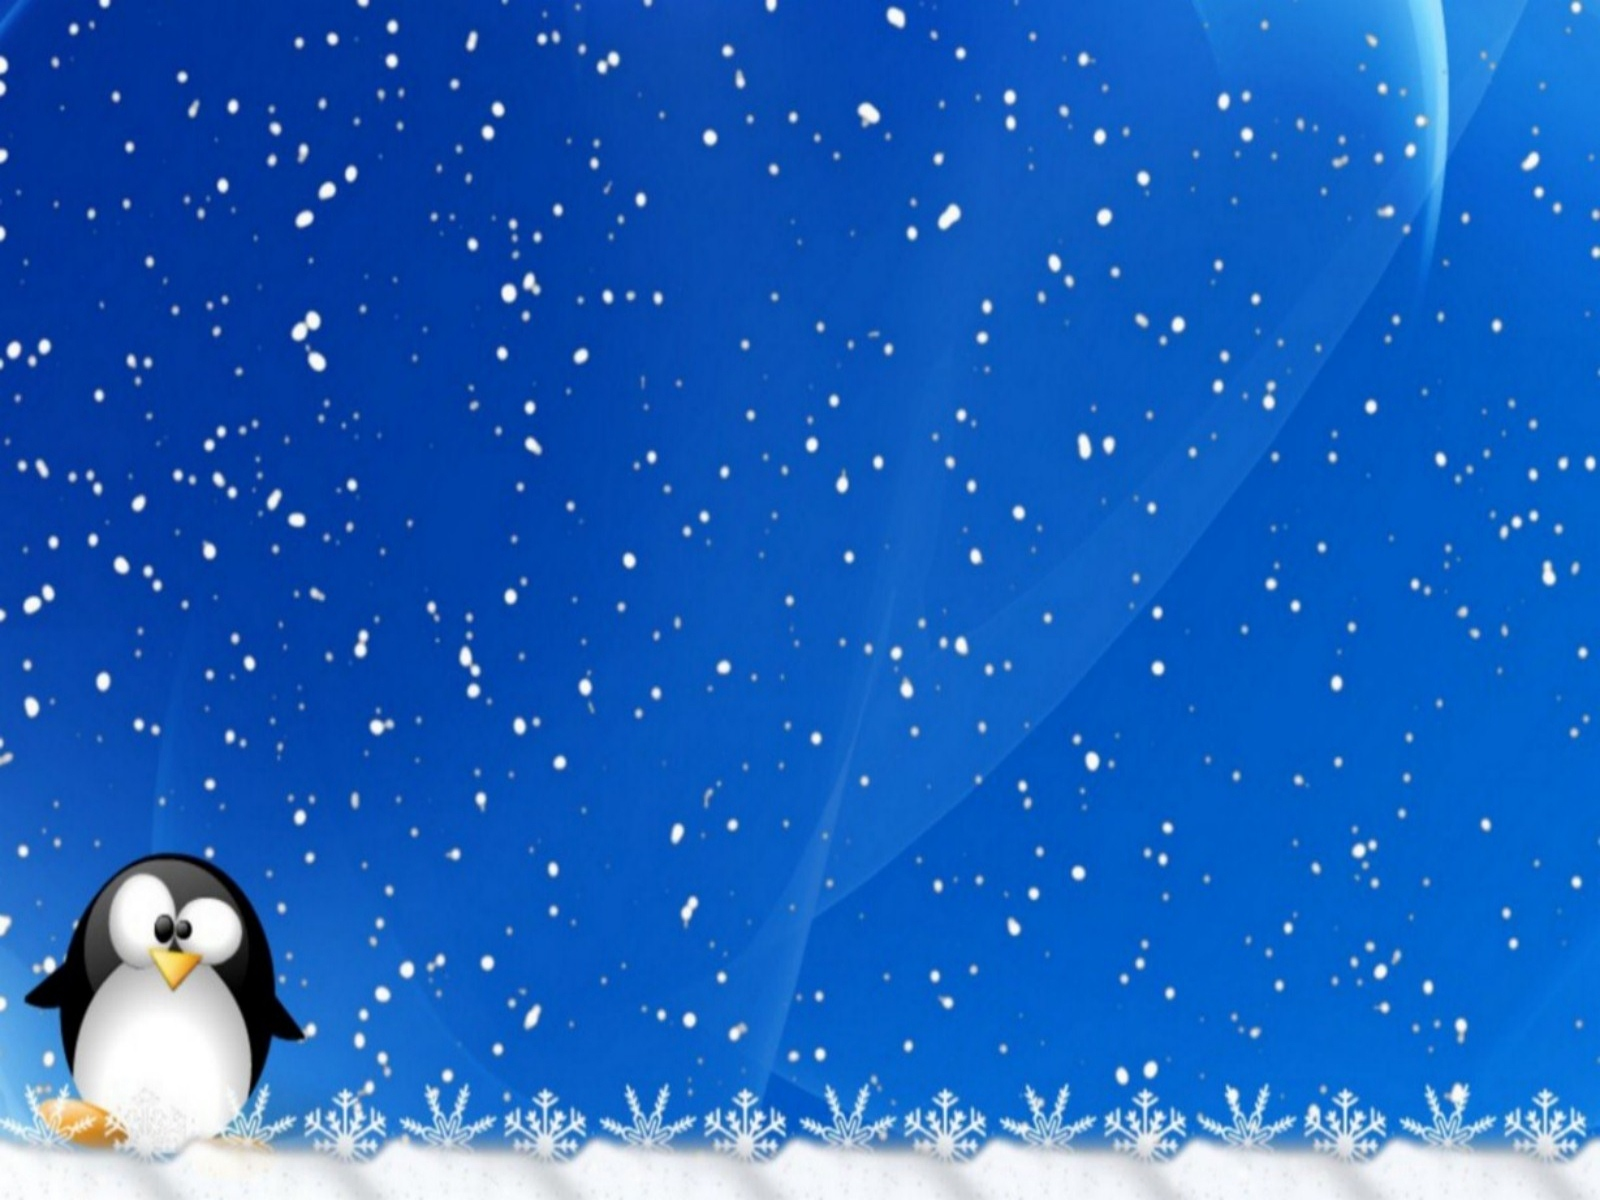 Desktop wallpapers holiday free - Christmas Winter Idyll Free Desktop Background Free Wallpaper Image